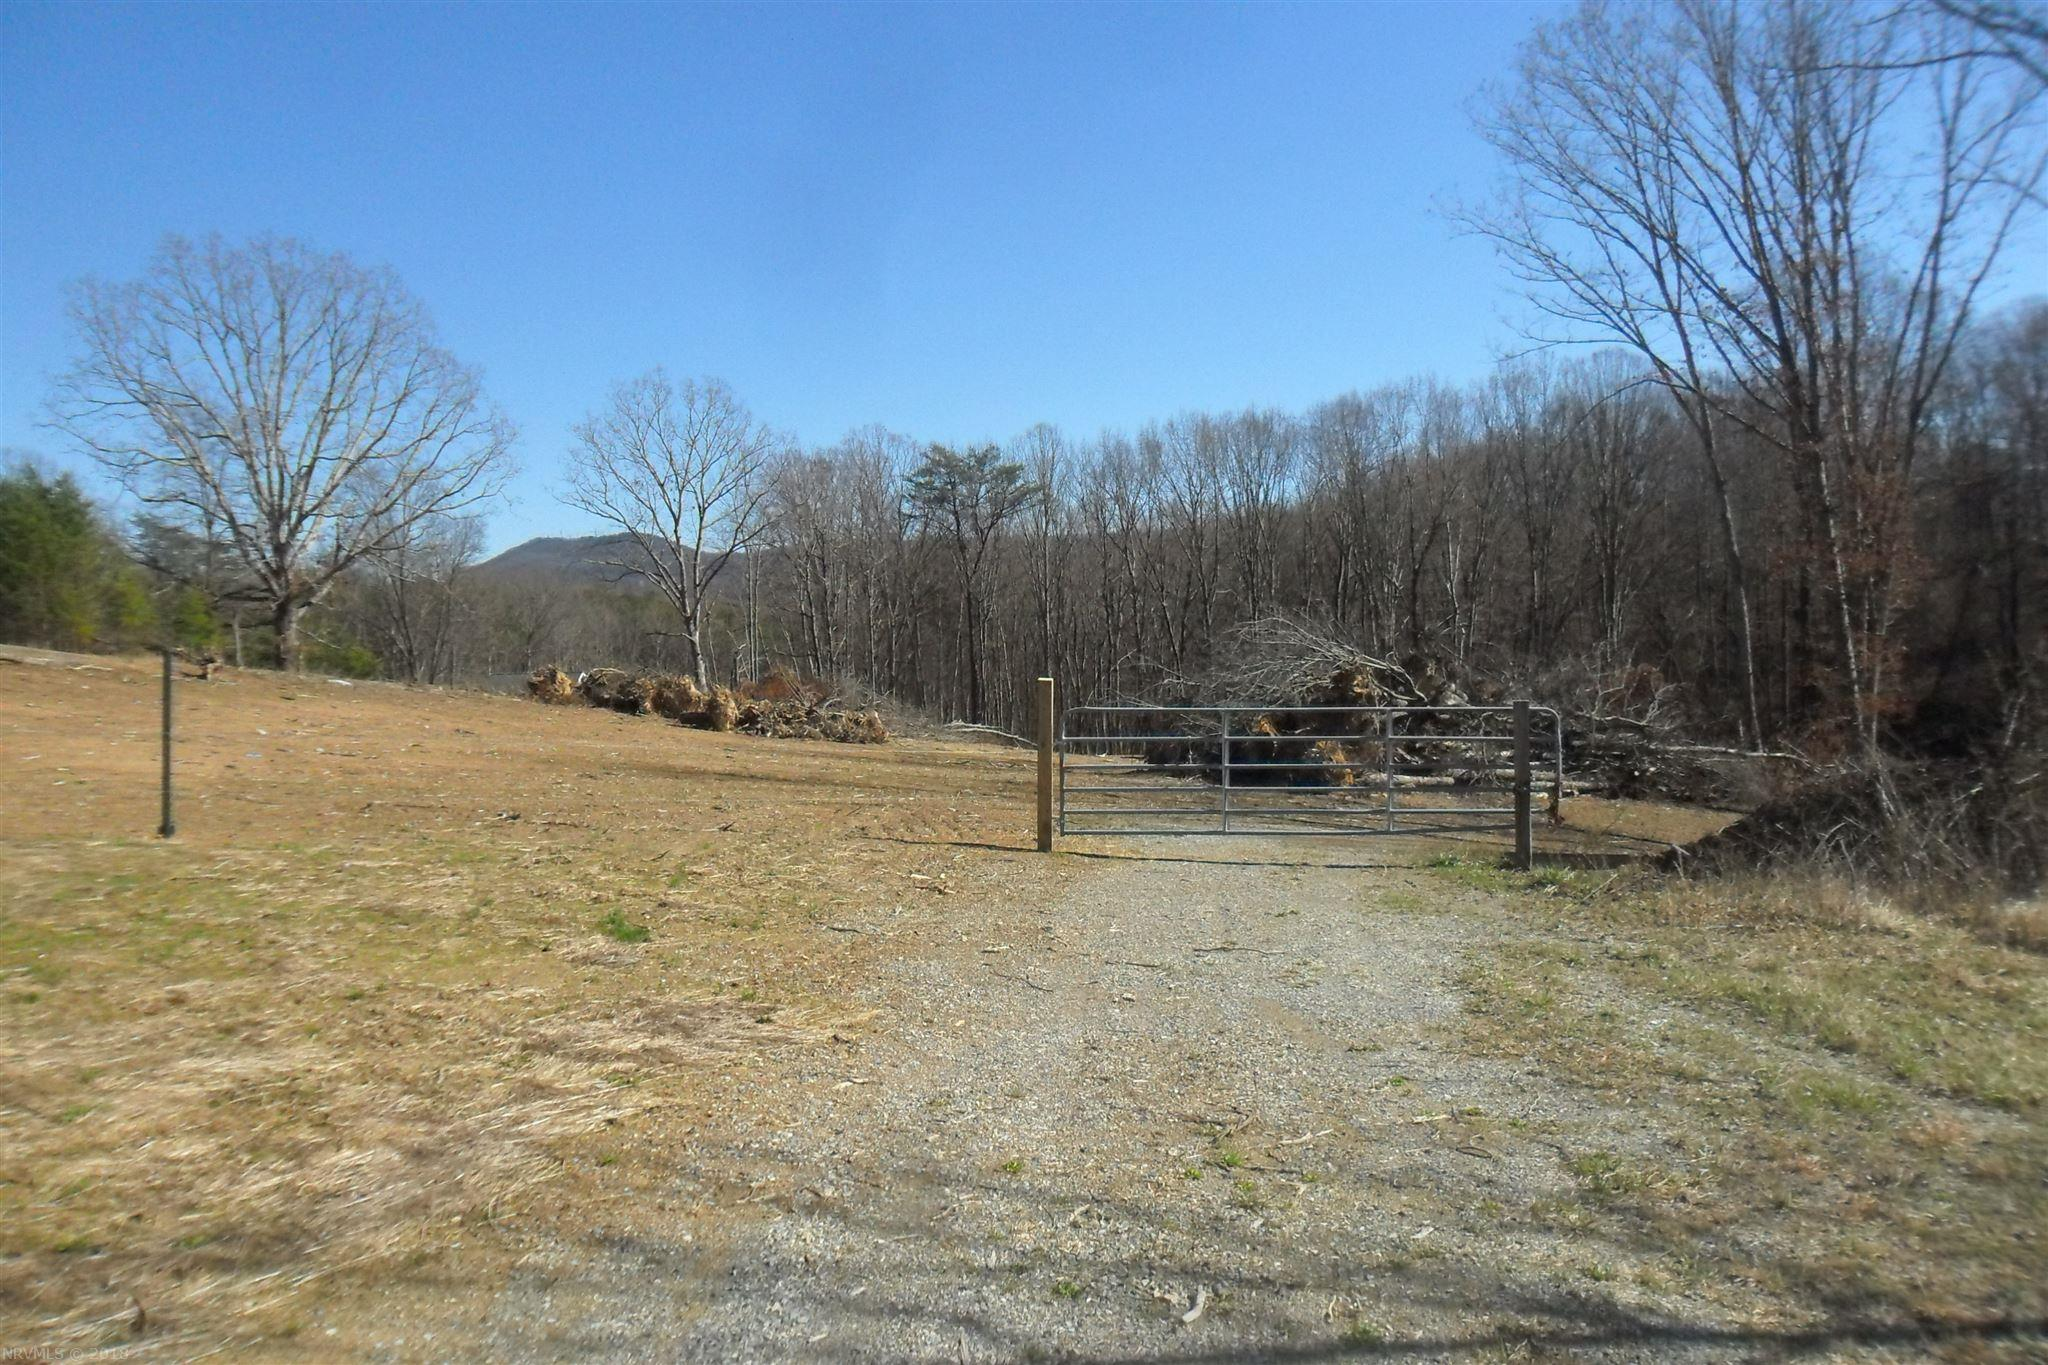 Nice tract of 22.7 acres. With about 2 acres graded next to the road. Timber and wildlife as the land slopes to front on Peak Creek. This land is not far from Gatewood Park and Jefferson National Forest.